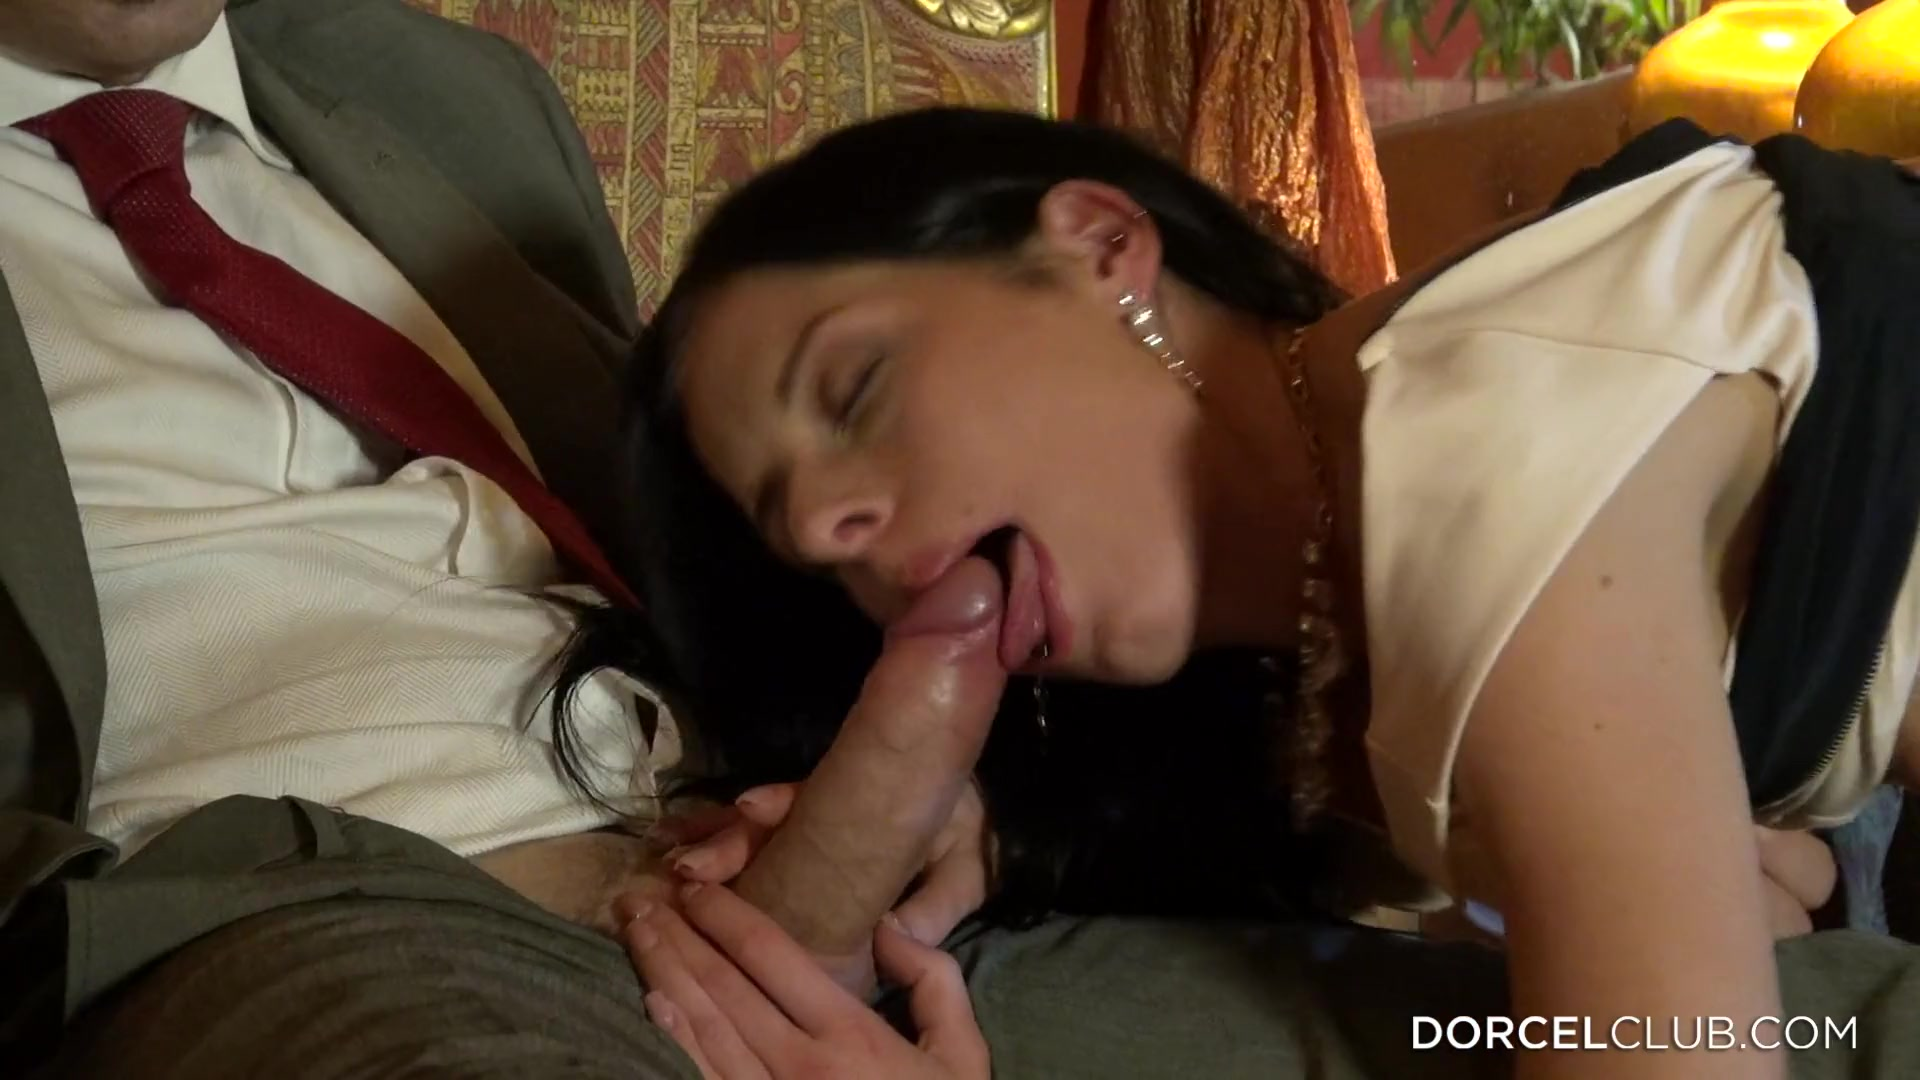 Flabbergasting anal sex from popular french porn website dorcelclub